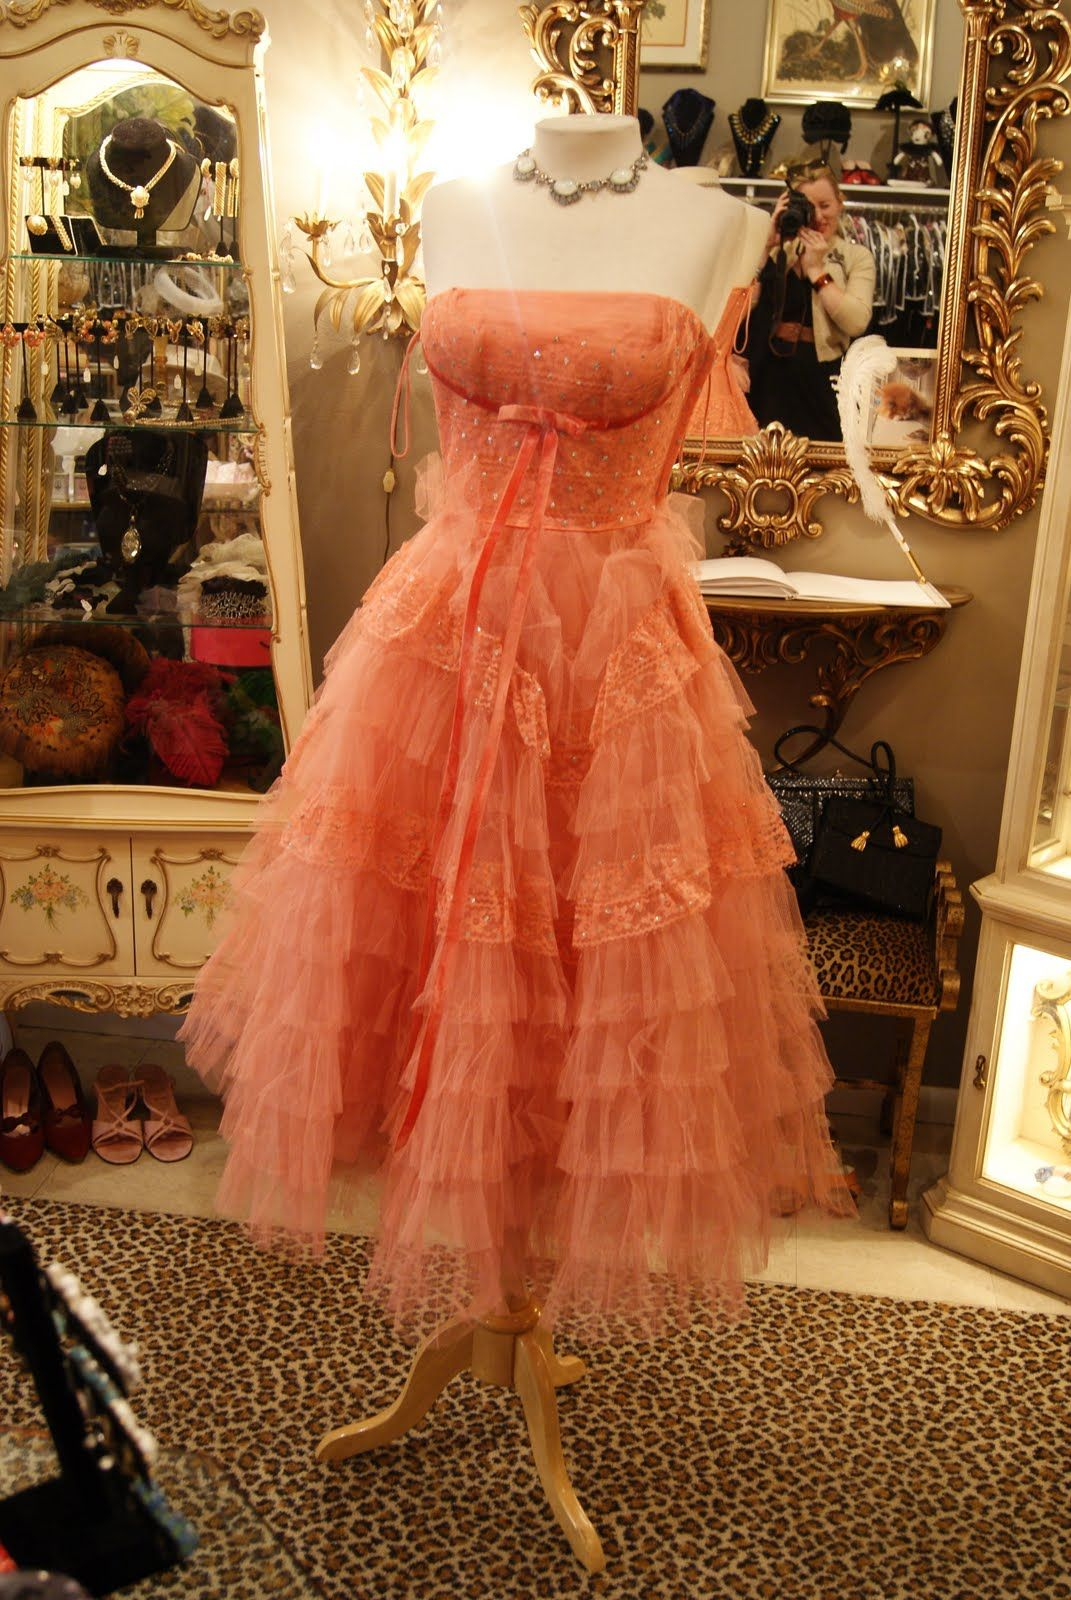 Us party dress back in time pinterest vintage clothing